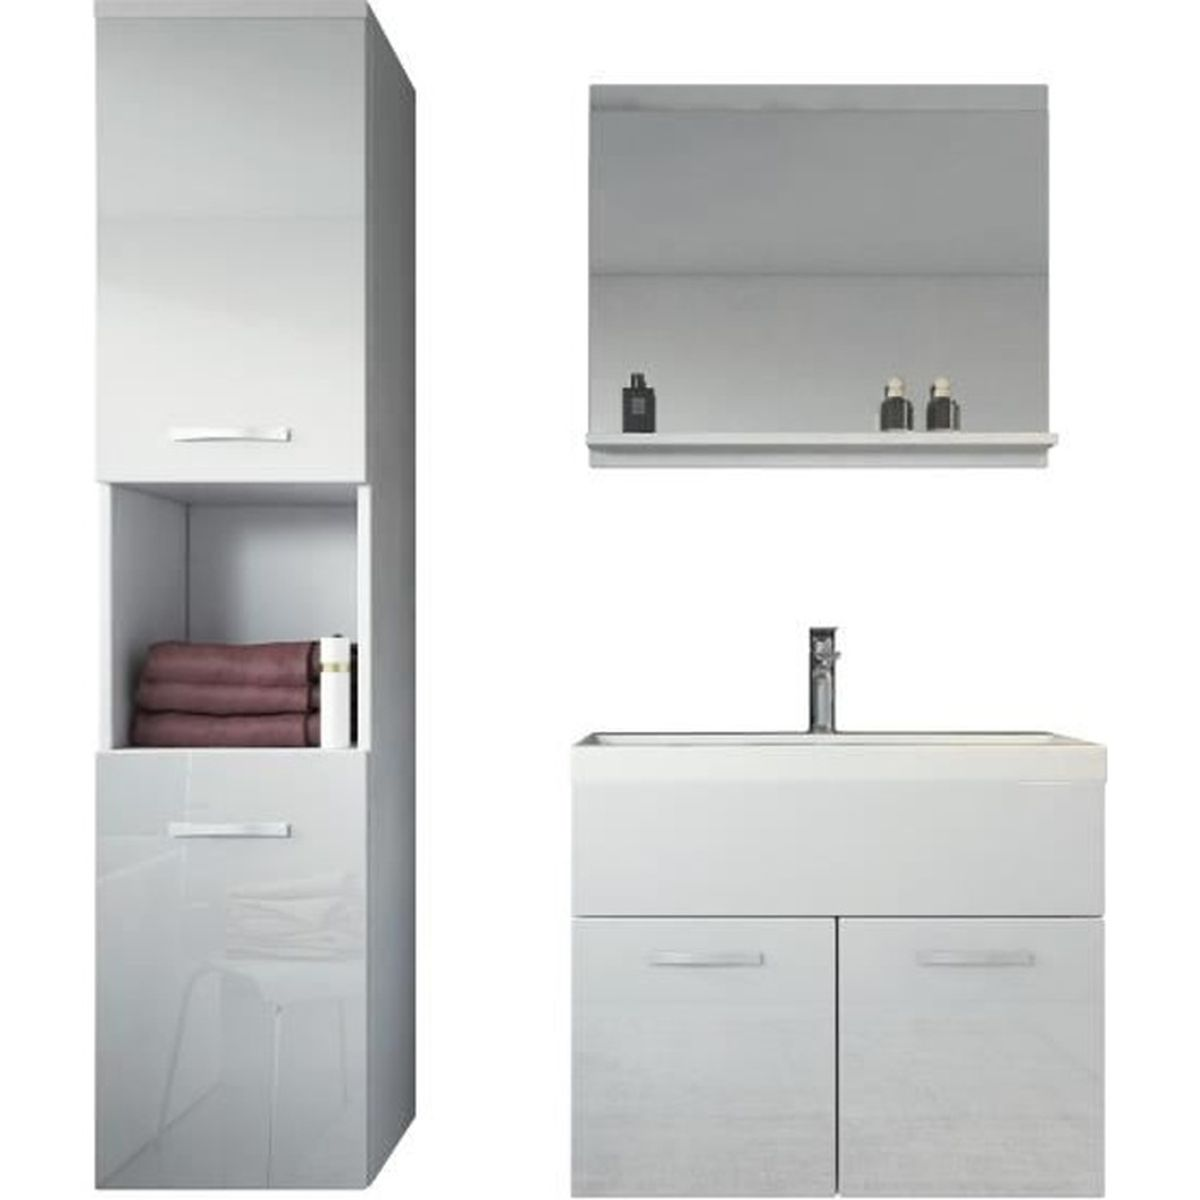 meuble de salle de bain de montr al 60x35 cm meuble lavabo armoire de rangement meuble lavabo. Black Bedroom Furniture Sets. Home Design Ideas